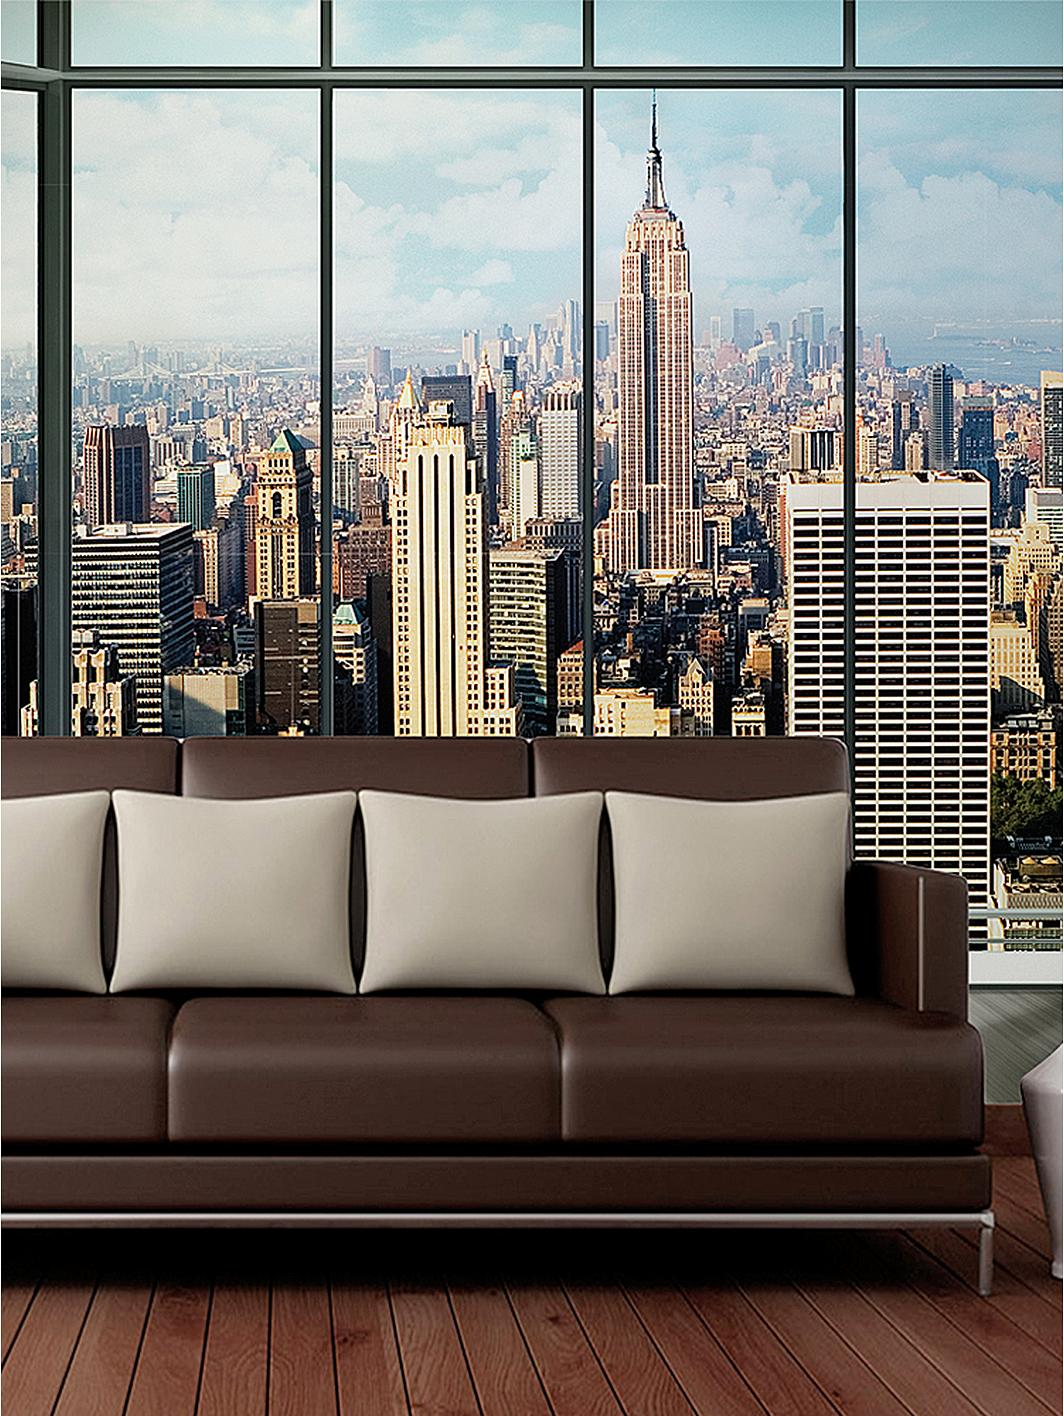 1wall new york skyline window wall mural. Black Bedroom Furniture Sets. Home Design Ideas